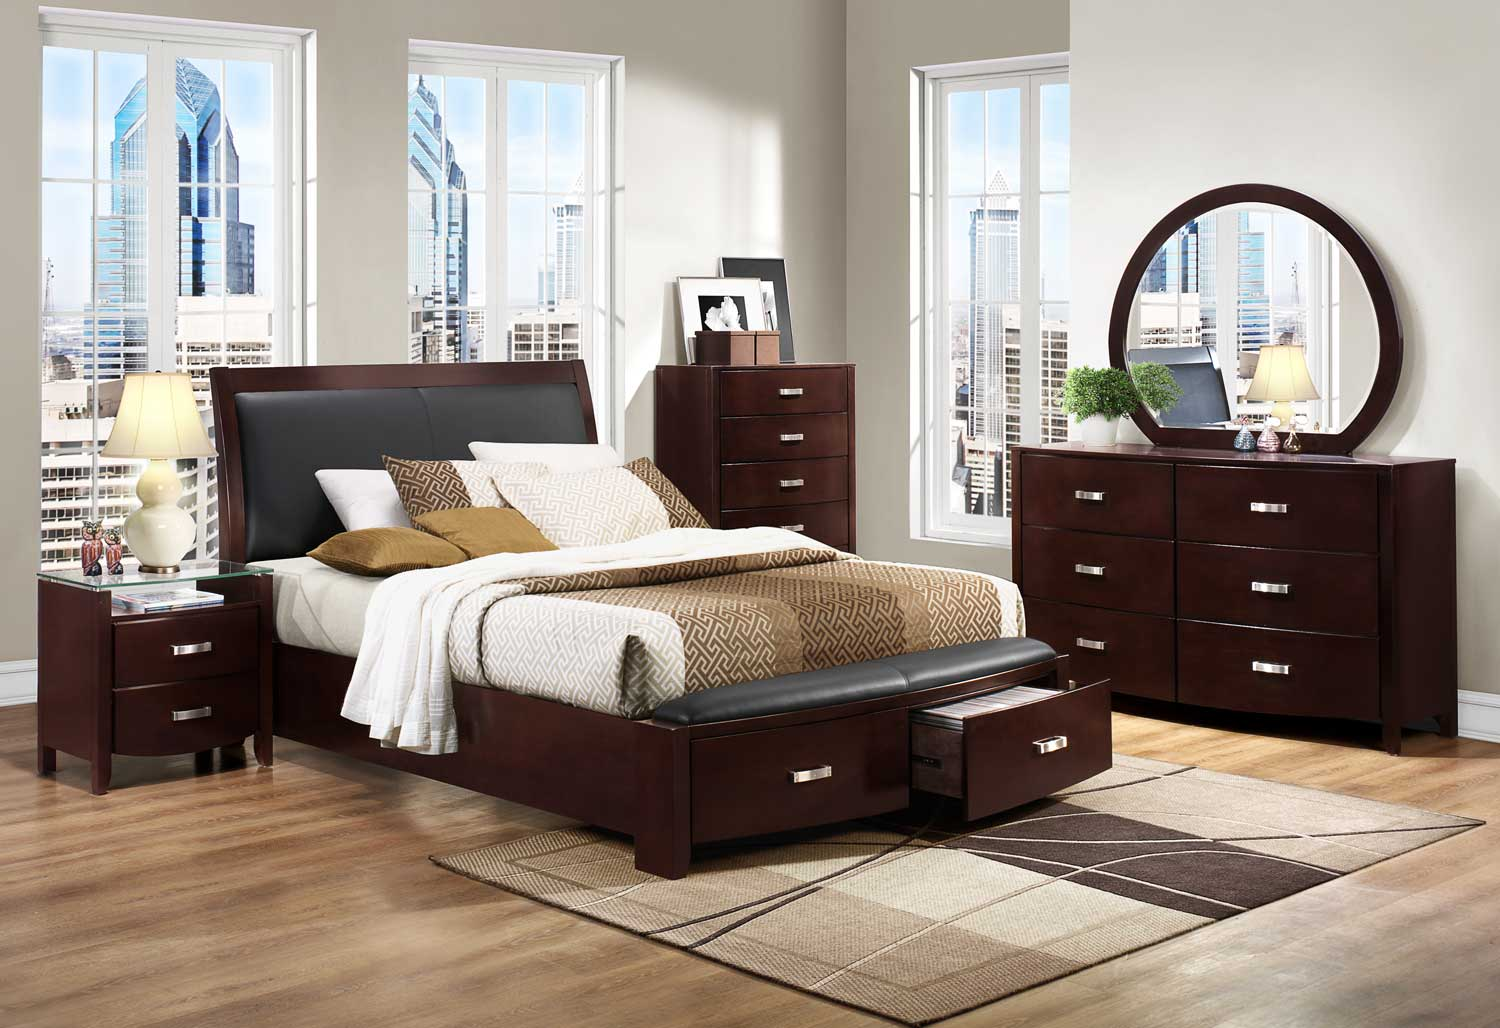 Bedroom Sets Espresso homelegance lyric platform bedroom set - dark espresso b1737nc-bed